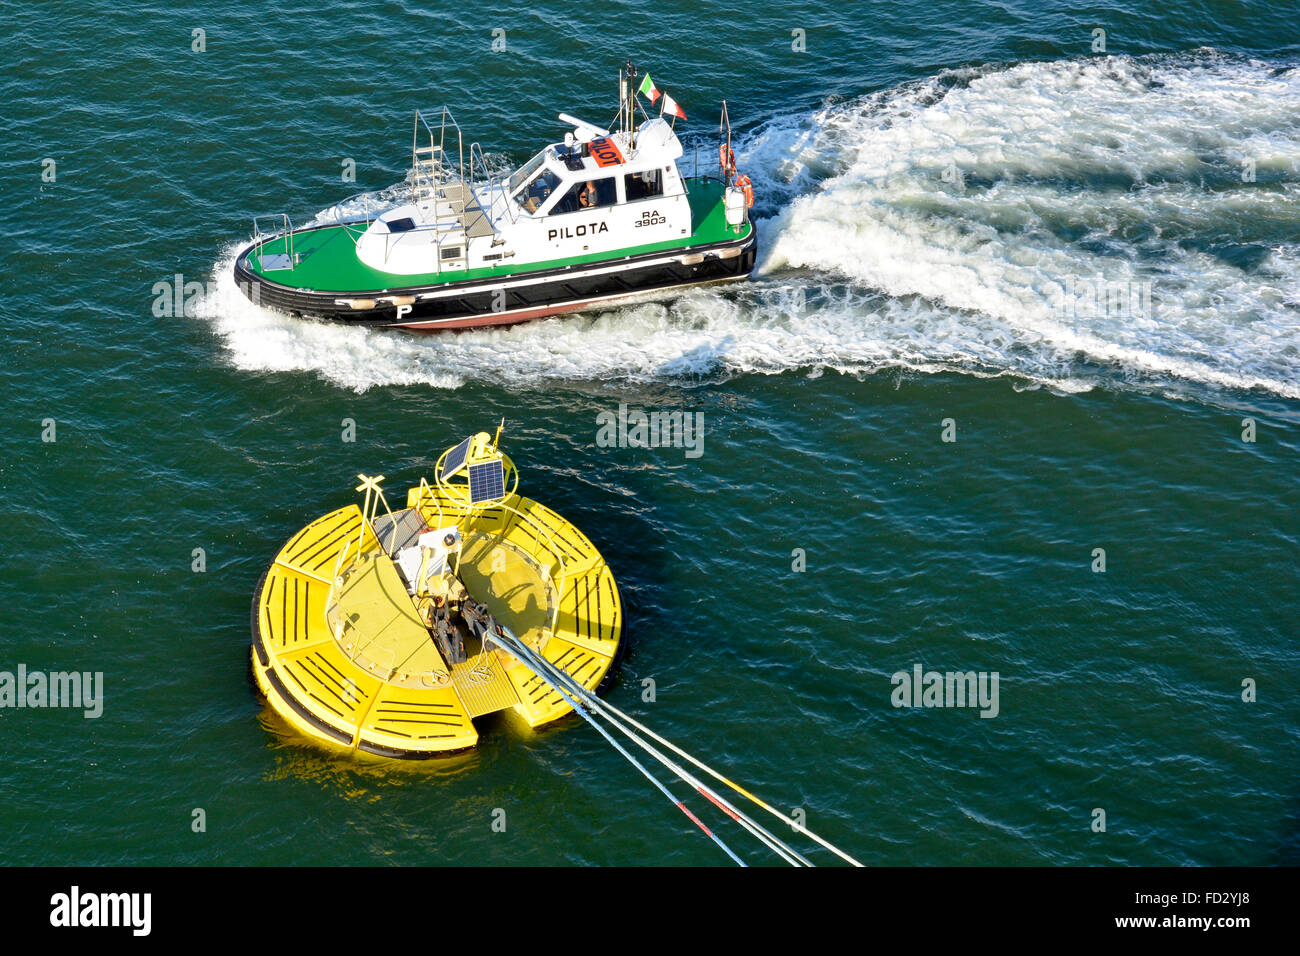 Pilots boat passing cruise ships mooring hawsers hooked onto floating buoy anchored to sea bed Stock Photo